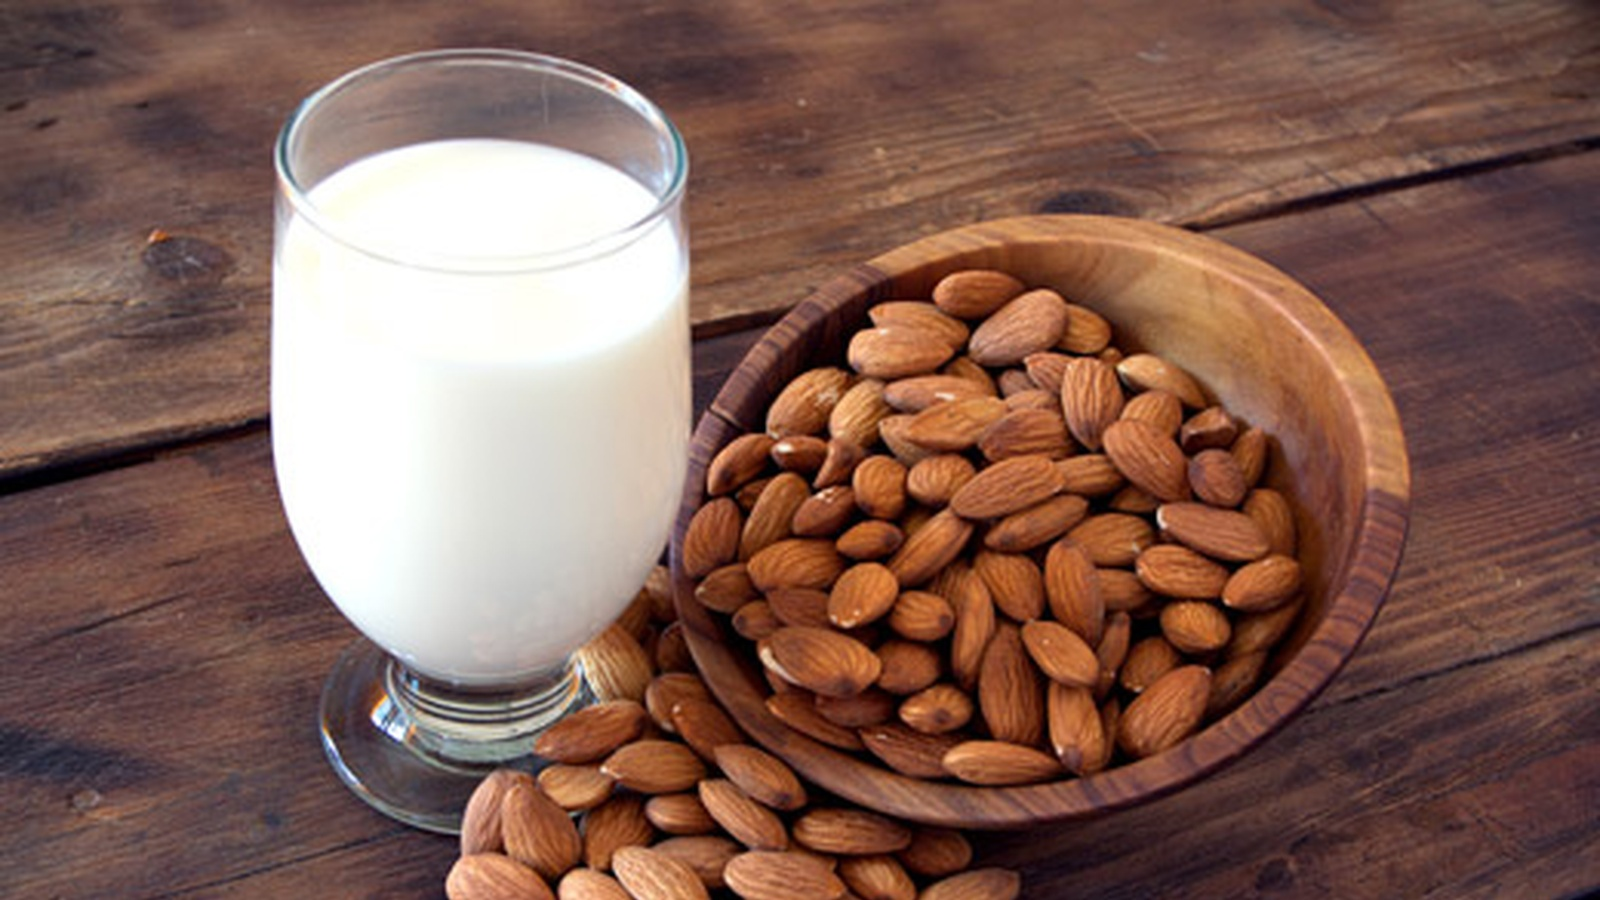 How to Make Nutrient-Rich, Additive-Free Nut Milks In Under 5 Minutes